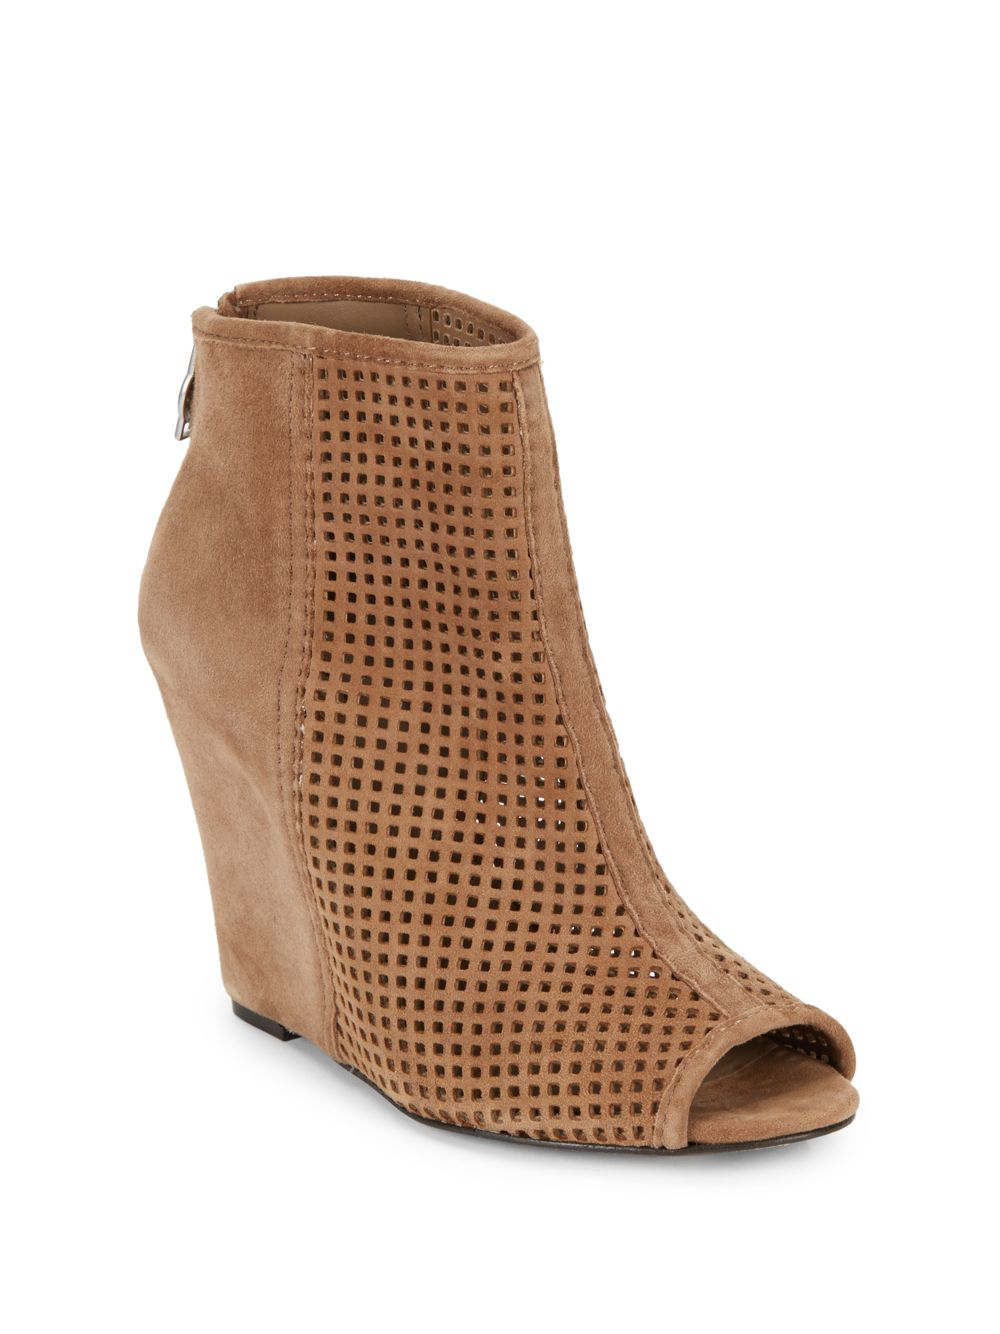 ash june perforated suede peep toe wedge ankle boot in